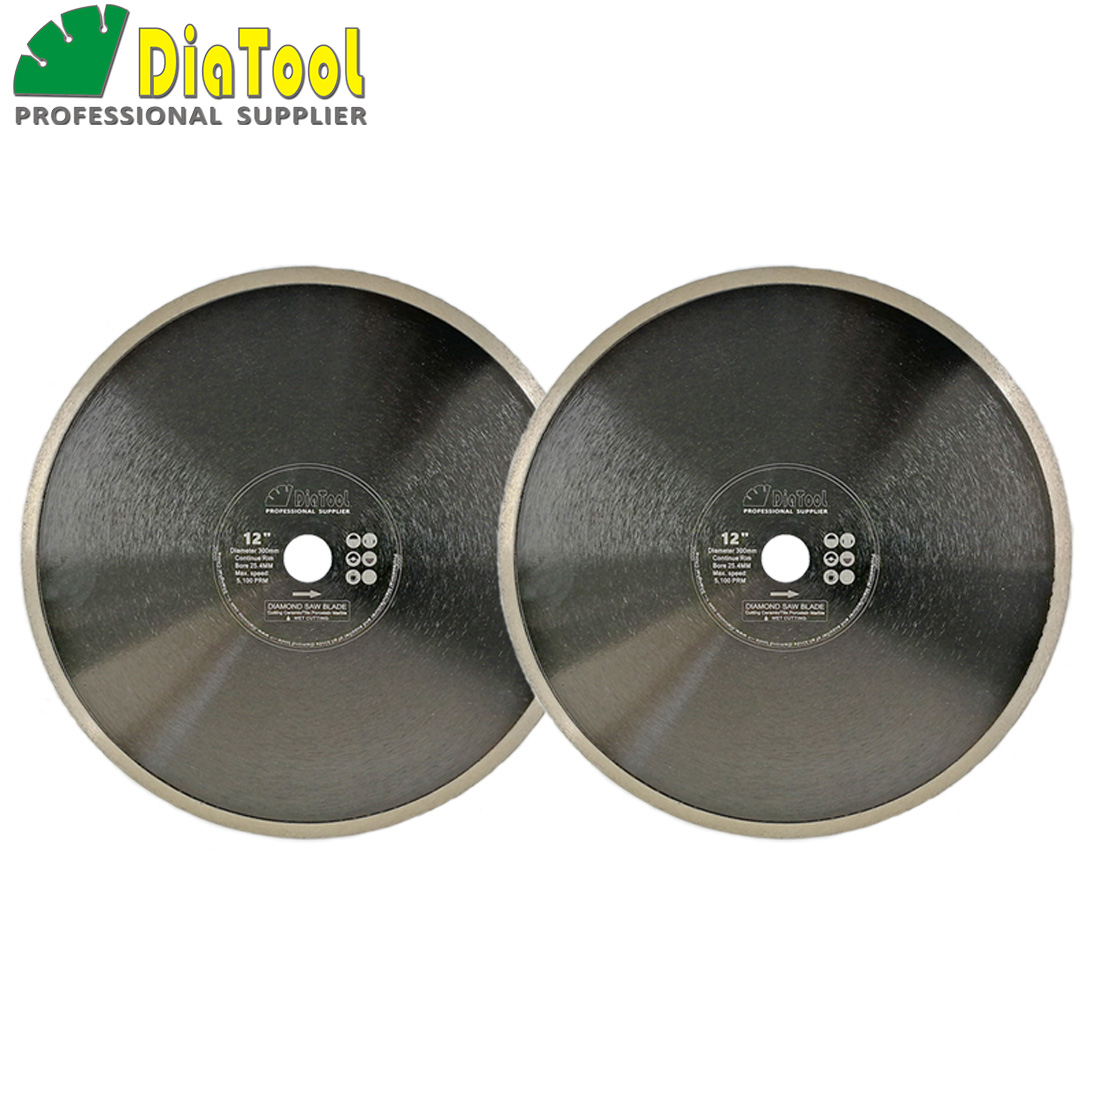 DIATOOL 2pcs Dia 12inch/14inch Hot-Pressed Continue Rim Diamond Blade Cutting Disc Porcelain Tile Ceramic Marble Saw Blade Wheel diatool 2pcs 4 5 115mm hot pressed continue rim cutting diamond blade ceramic tile sawblade thin cutting disc diamond wheel